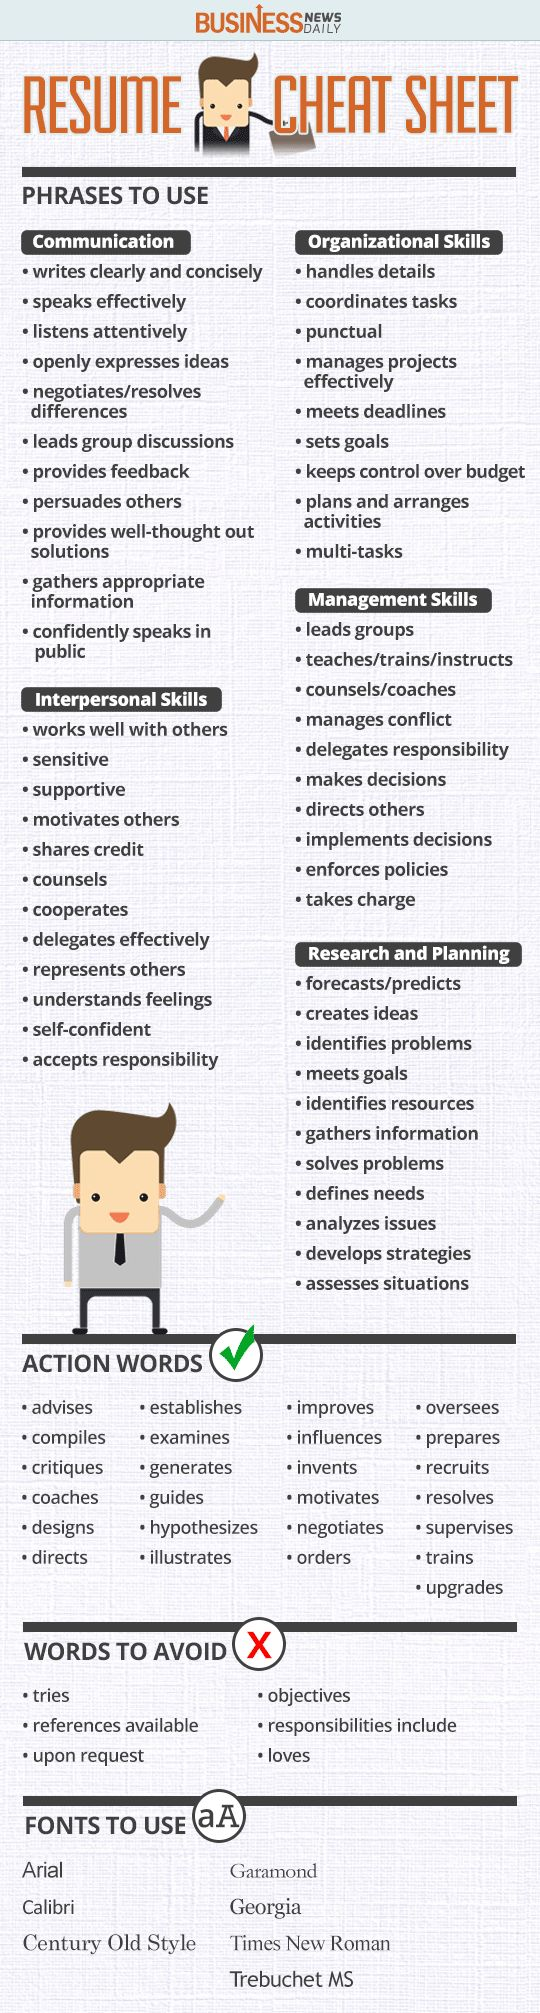 Opposenewapstandardsus  Gorgeous  Ideas About Resume On Pinterest  Cv Format Resume Cv And  With Magnificent Resume Cheat Sheet Infographic Andrews Almost Done With A Complete Unit On Employment Which With Beautiful Physical Therapy Assistant Resume Also Medical Resume Sample In Addition What Is A Combination Resume And Entry Level Web Developer Resume As Well As Resume Reviewer Additionally Hr Resume Objective From Pinterestcom With Opposenewapstandardsus  Magnificent  Ideas About Resume On Pinterest  Cv Format Resume Cv And  With Beautiful Resume Cheat Sheet Infographic Andrews Almost Done With A Complete Unit On Employment Which And Gorgeous Physical Therapy Assistant Resume Also Medical Resume Sample In Addition What Is A Combination Resume From Pinterestcom